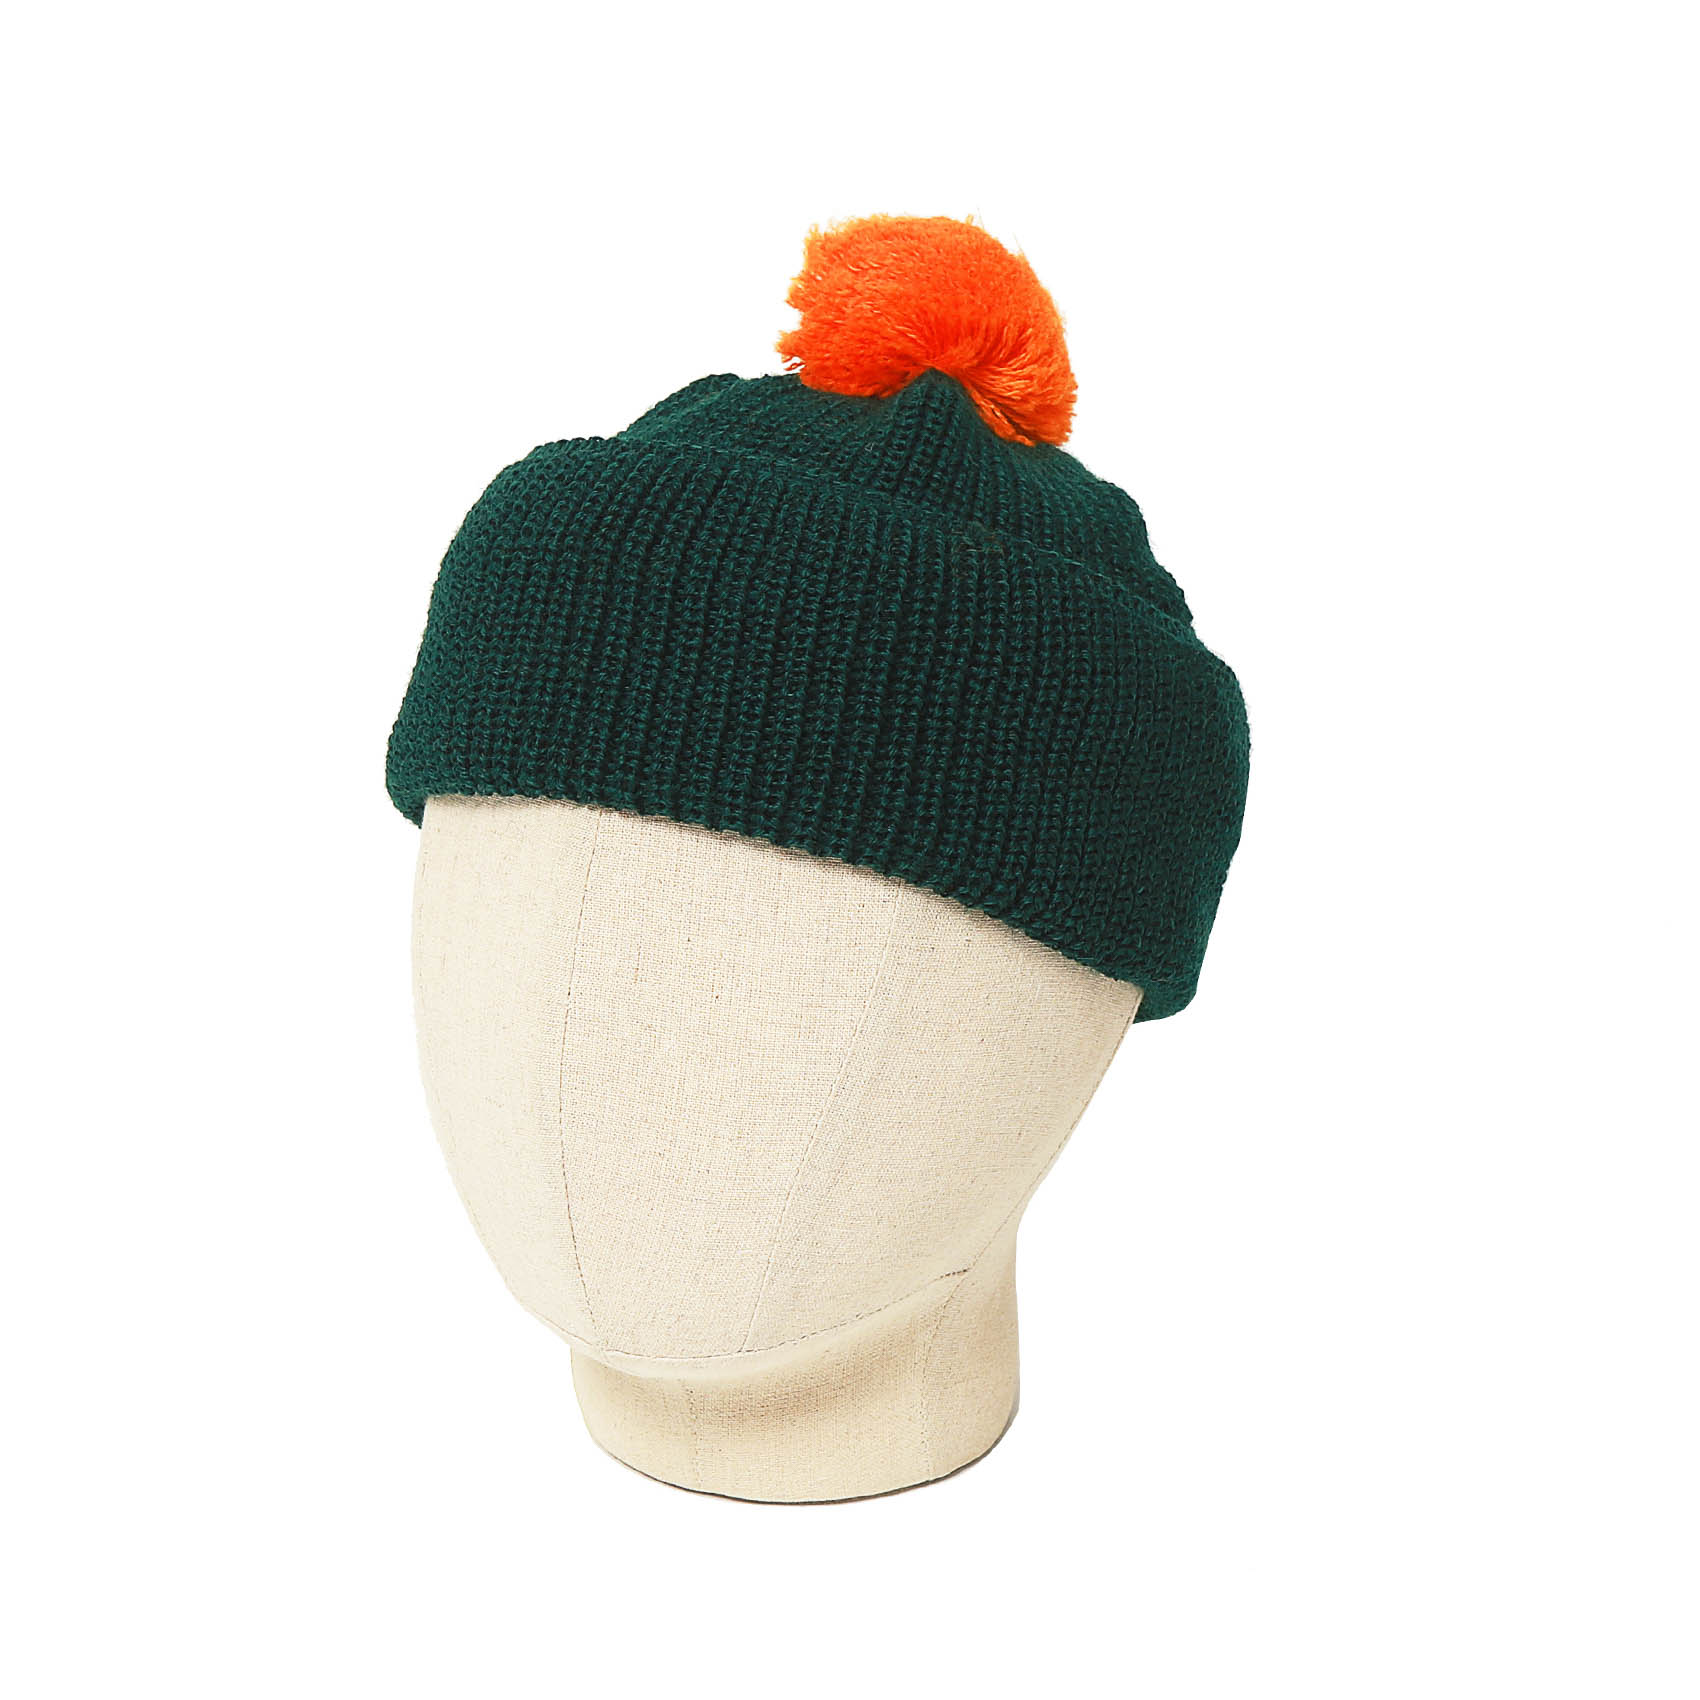 BOBBLE HAT - GREEN/ORANGE